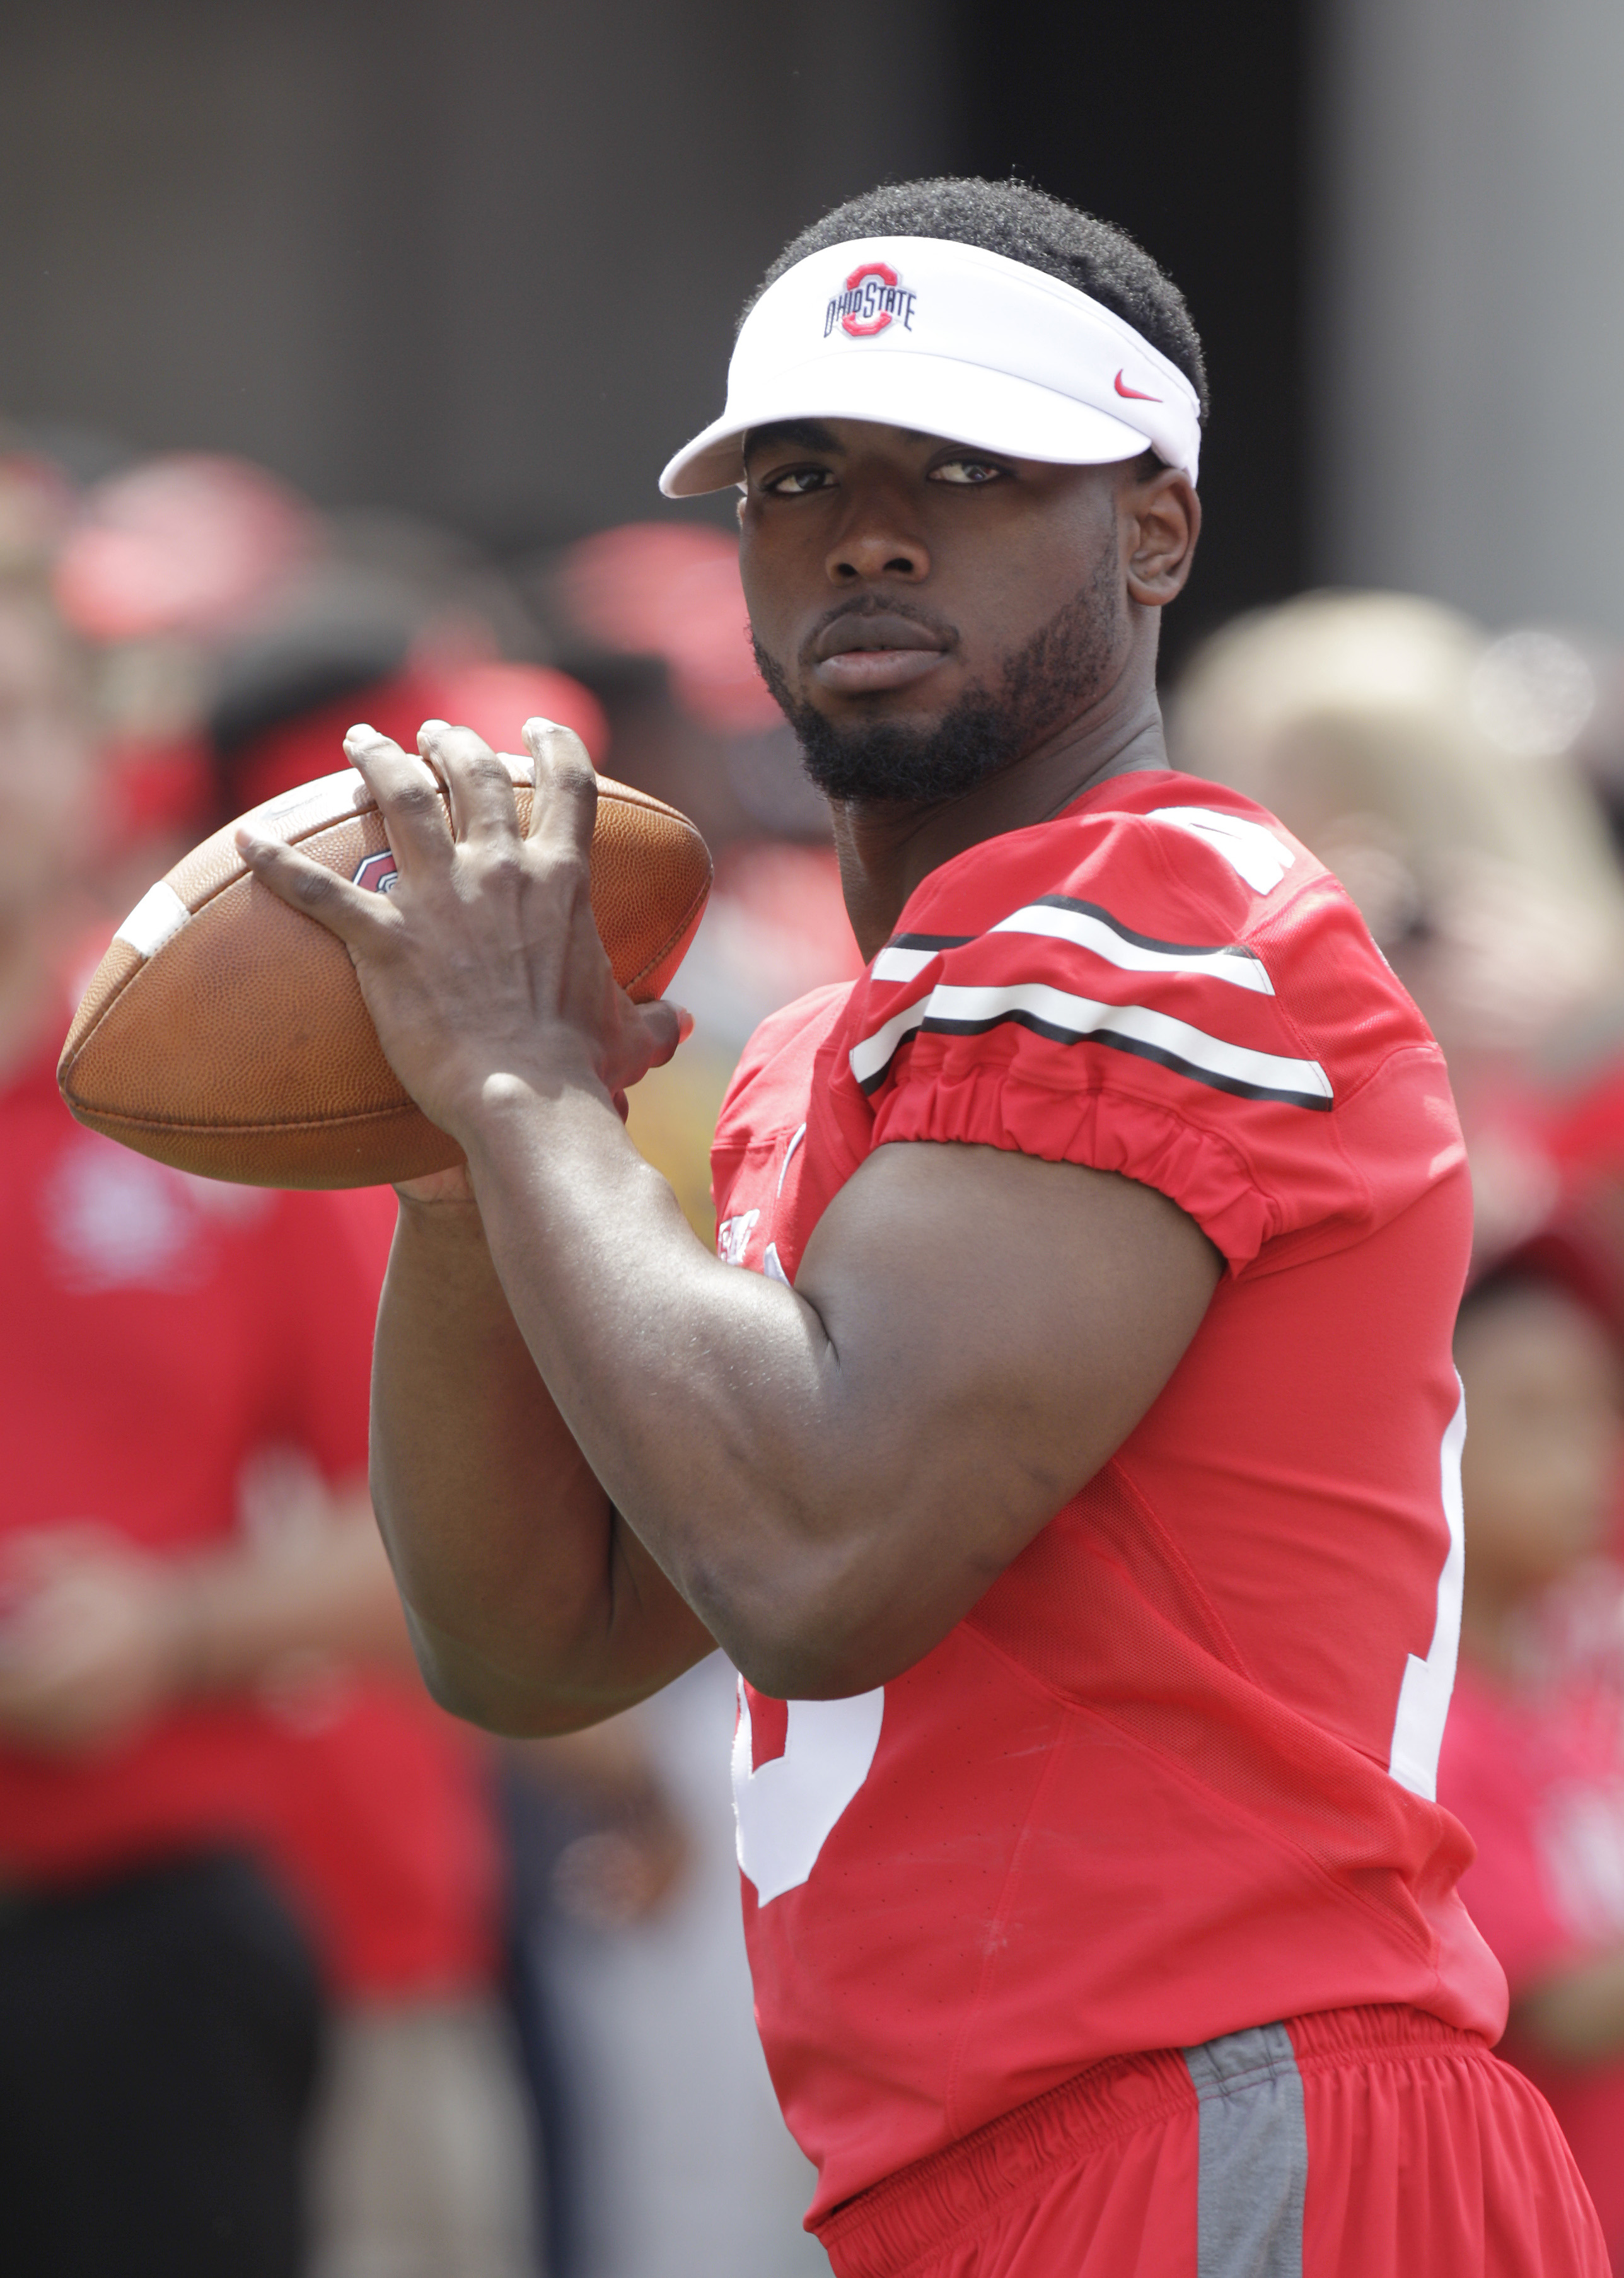 Ohio State quarterback J.T. Barrett warms up before the start of Ohio State's NCAA college football Spring game Saturday, April 18, 2015, in Columbus, Ohio. (AP Photo/Jay LaPrete)